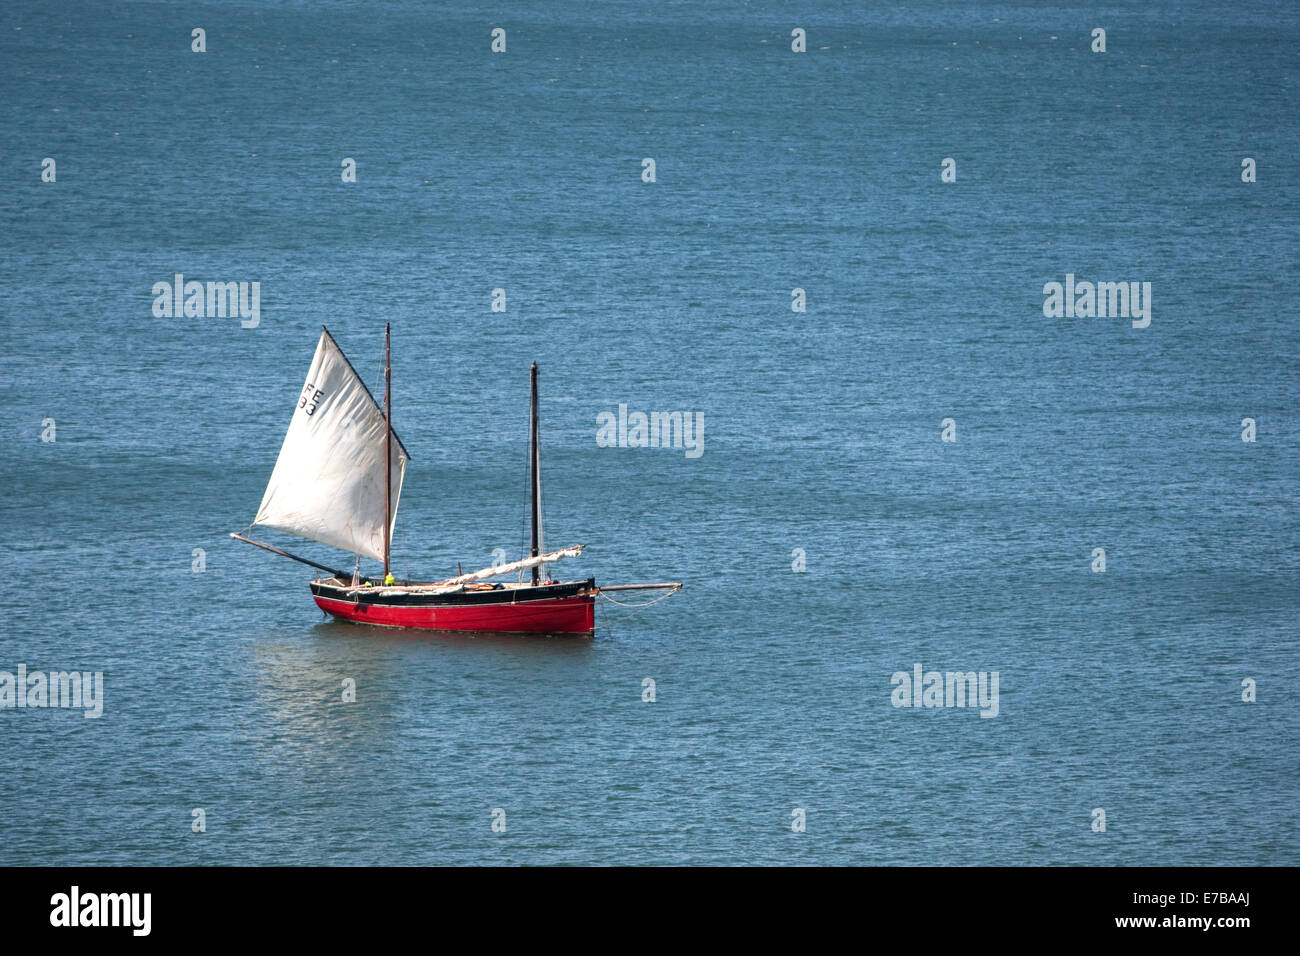 A small red boat with a white sail on blue sea - Stock Image